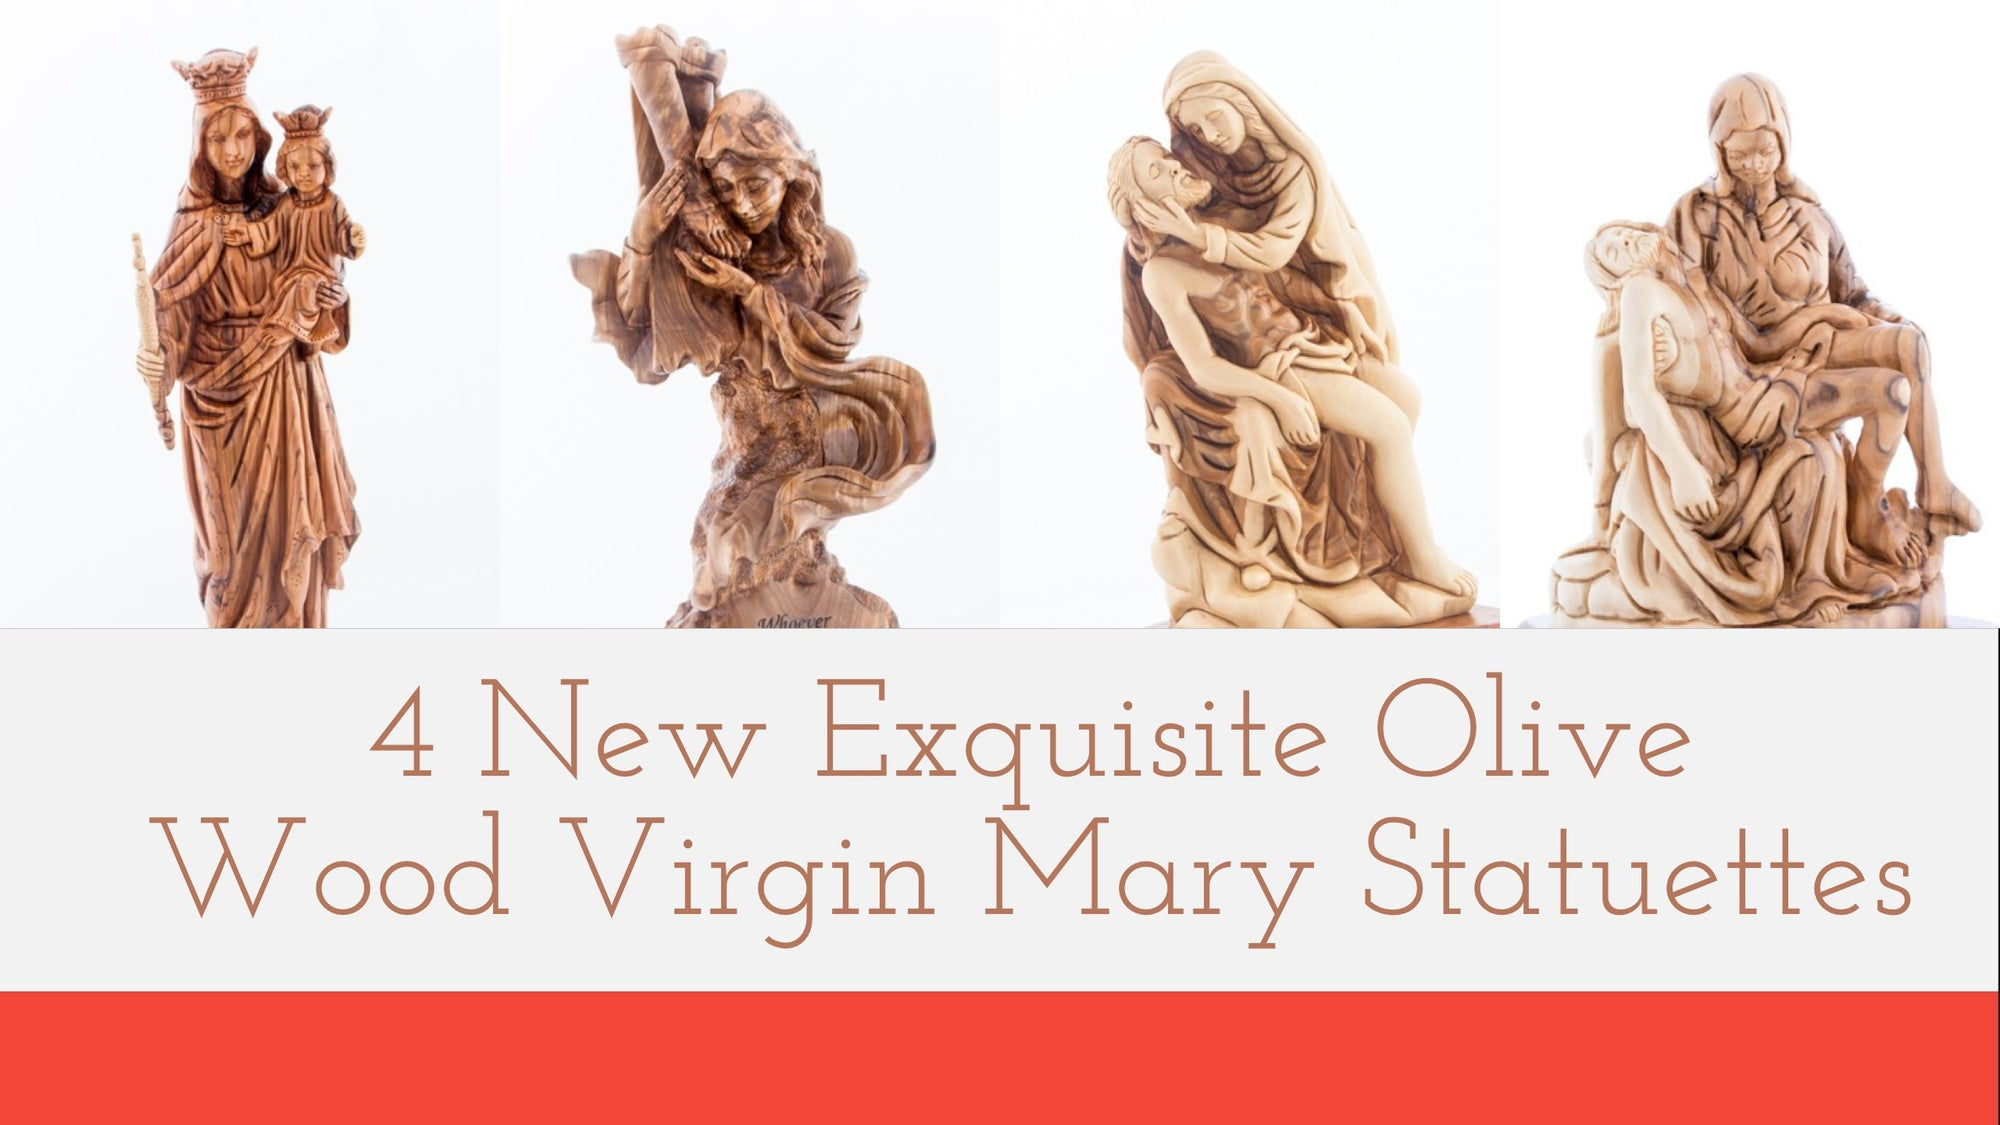 4 New Exquisite Olive Wood Virgin Mary Statues